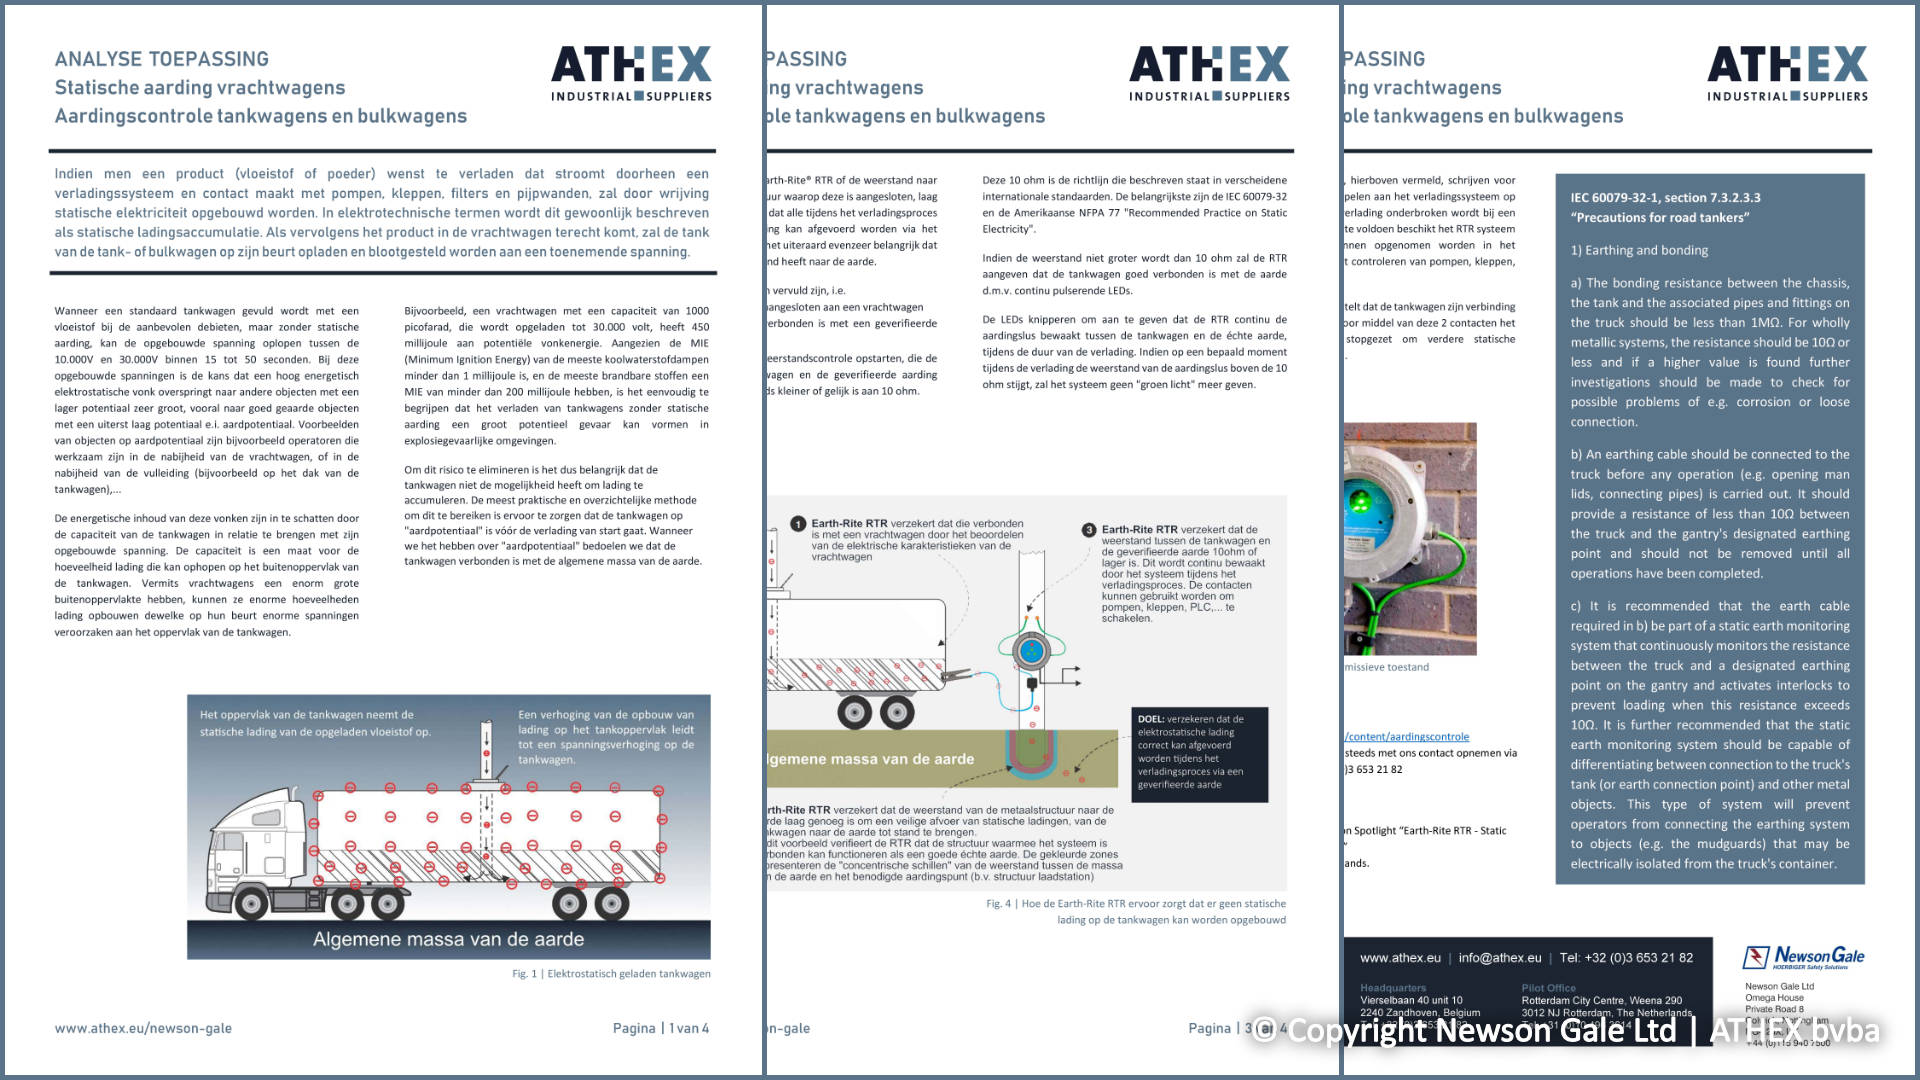 athex-industrial-suppliers_case-study